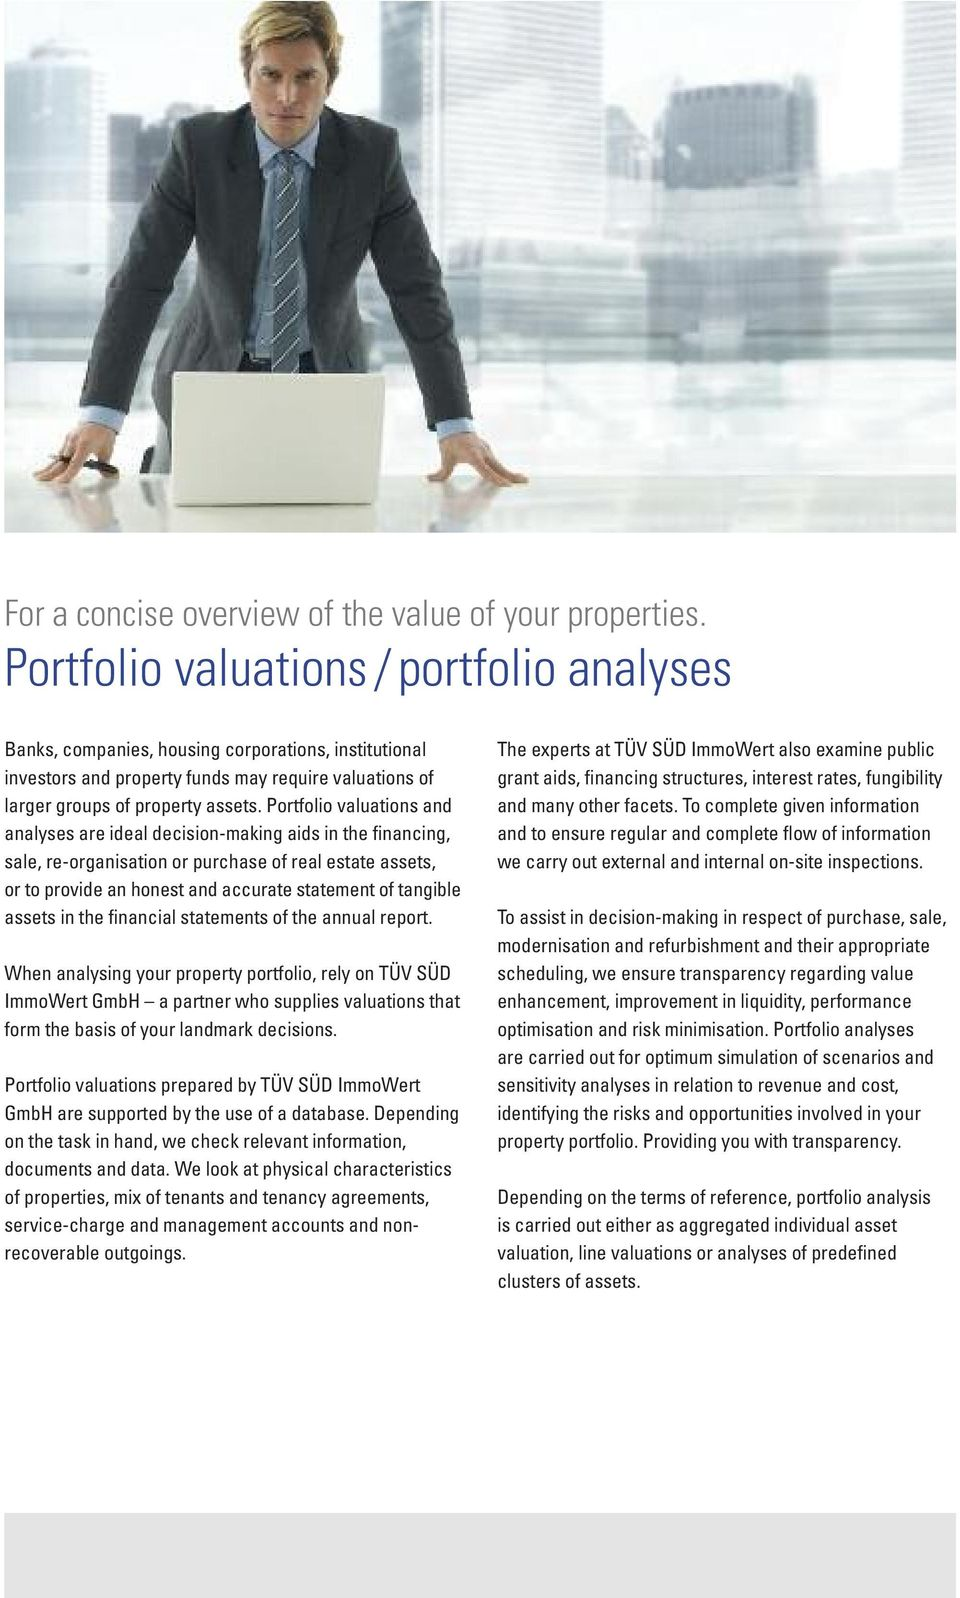 Portfolio valuations and analyses are ideal decision-making aids in the financing, sale, re-organisation or purchase of real estate assets, or to provide an honest and accurate statement of tangible